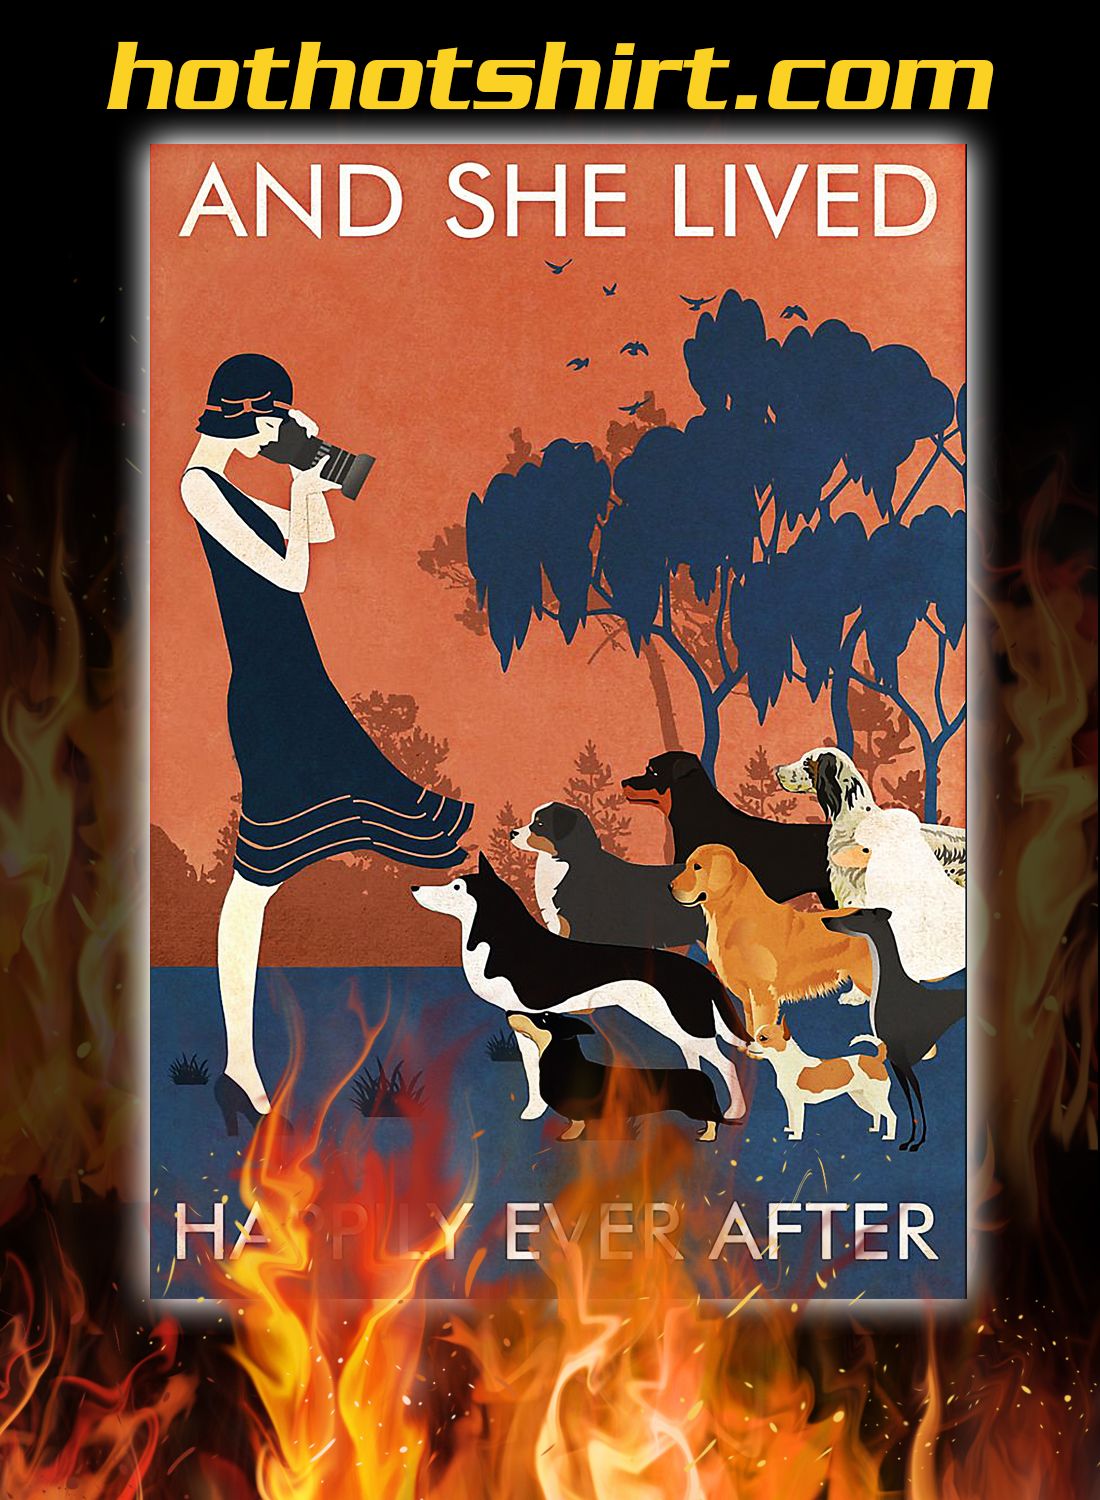 Dogs and she lived happily ever after poster 1